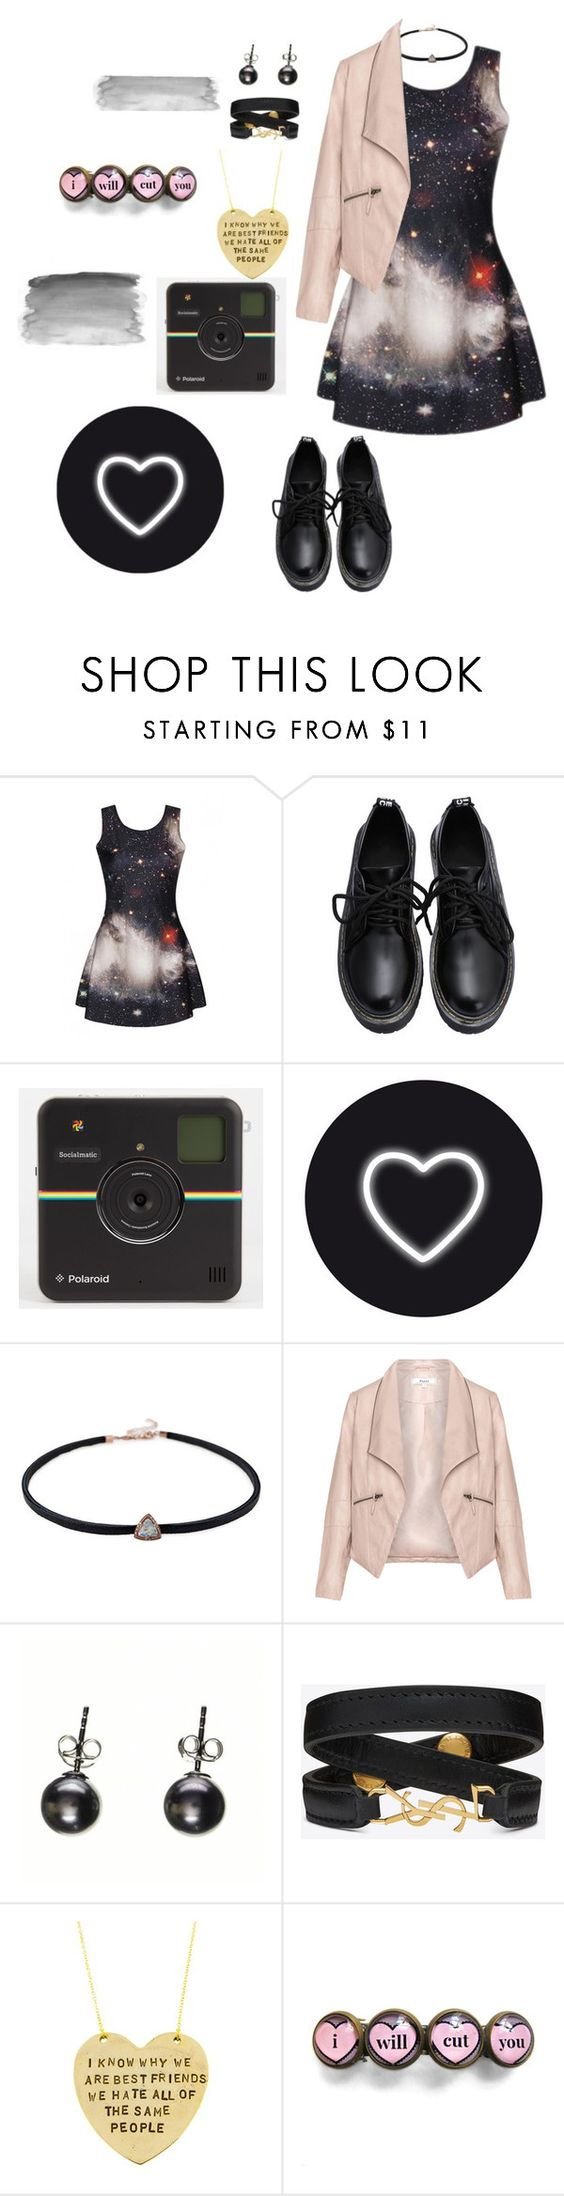 """""""We've made it this far...kid."""" by rocker-chick-88 ❤ liked on Polyvore featuring Zizzi, Yves Saint Laurent, Alisa Michelle, women's clothing, women, female, woman, misses and juniors"""